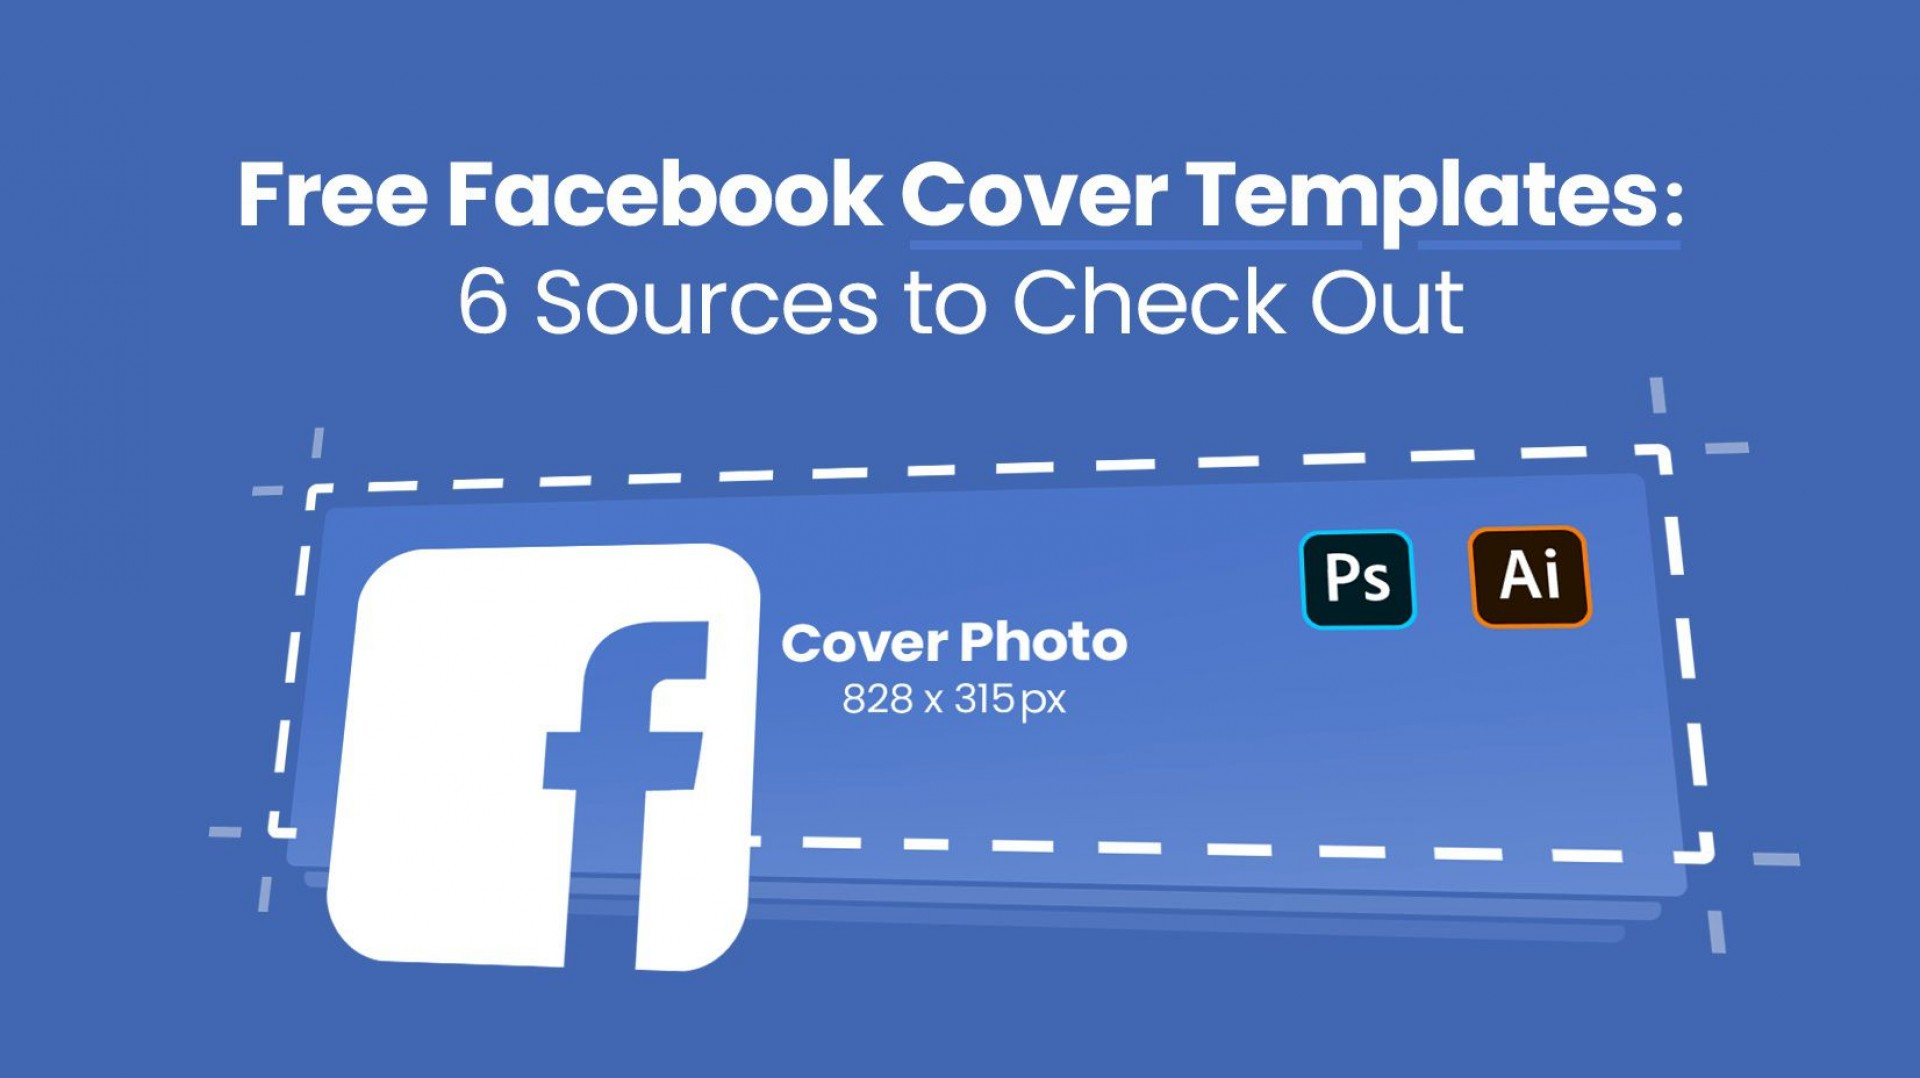 008 Unique Free Facebook Cover Template Example  Templates Photoshop1920